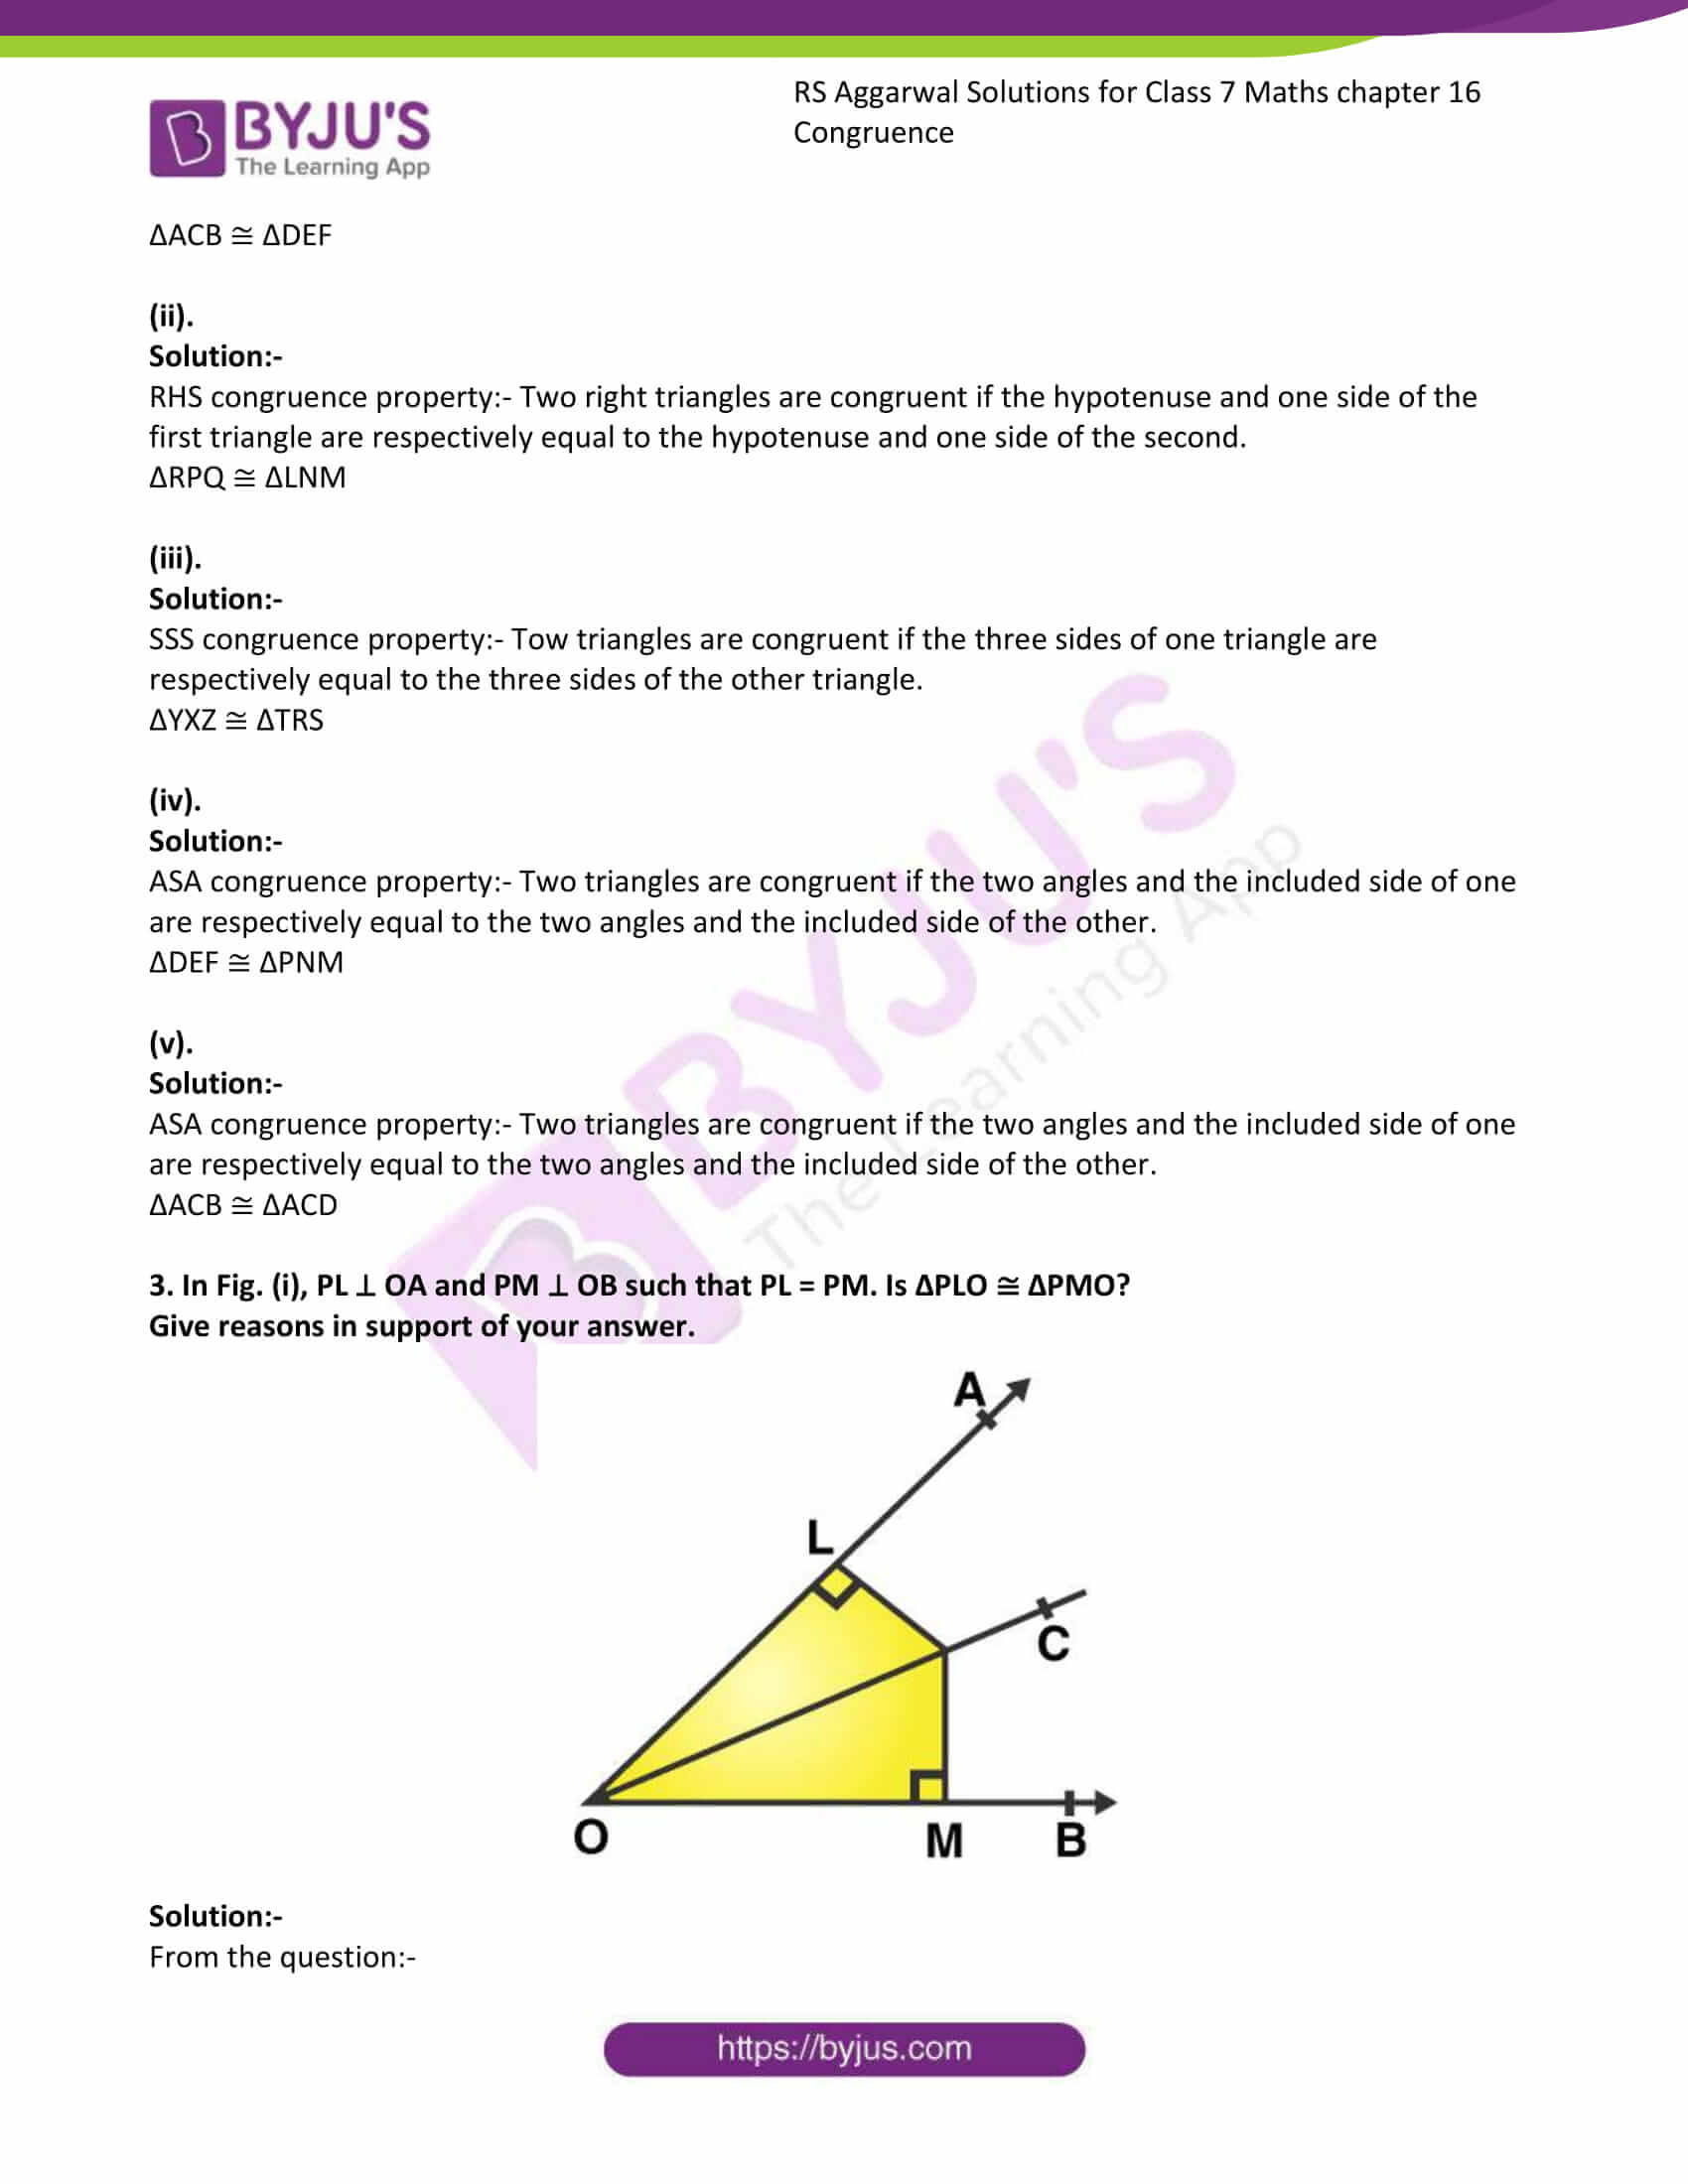 RS Aggarwal Solutions Class 7 Maths Chapter 16 Congruence 3